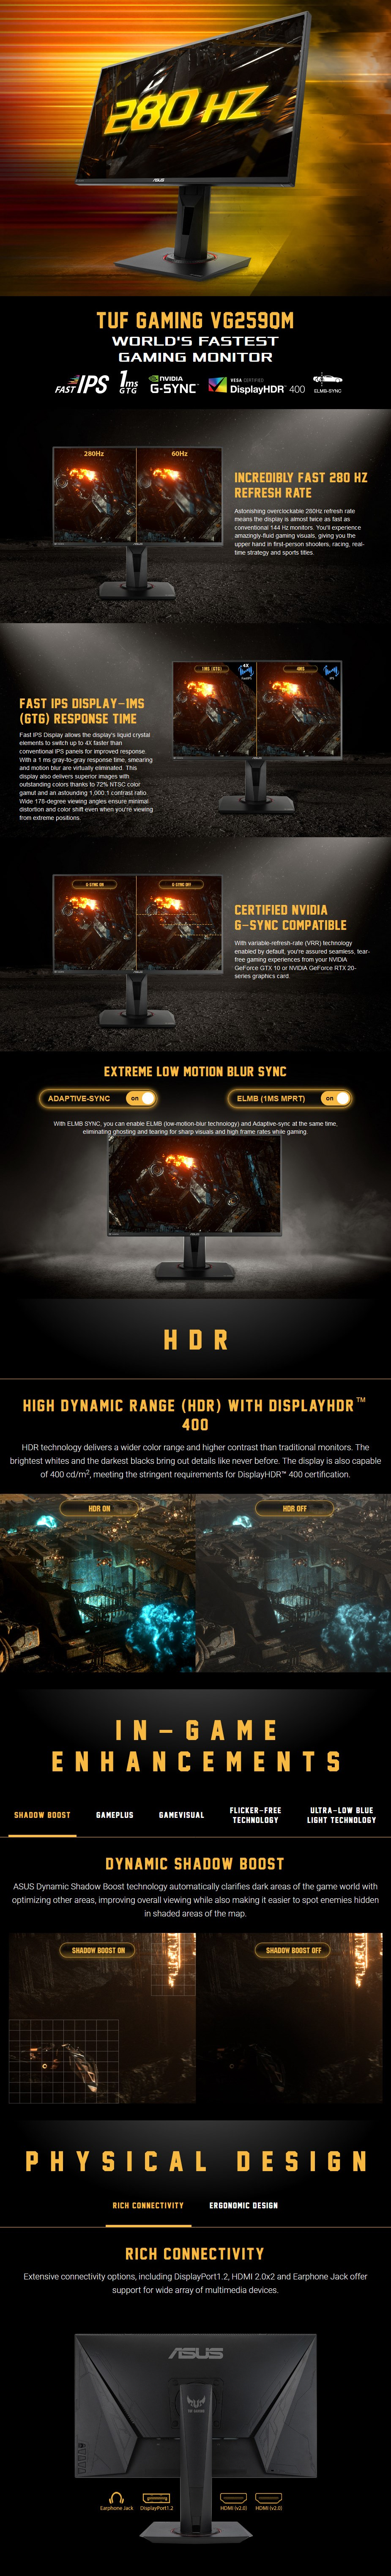 """ASUS TUF Gaming VG259QM 24.5"""" 280Hz Full HD 1ms G-Sync Ready IPS Gaming Monitor - Overview 1"""